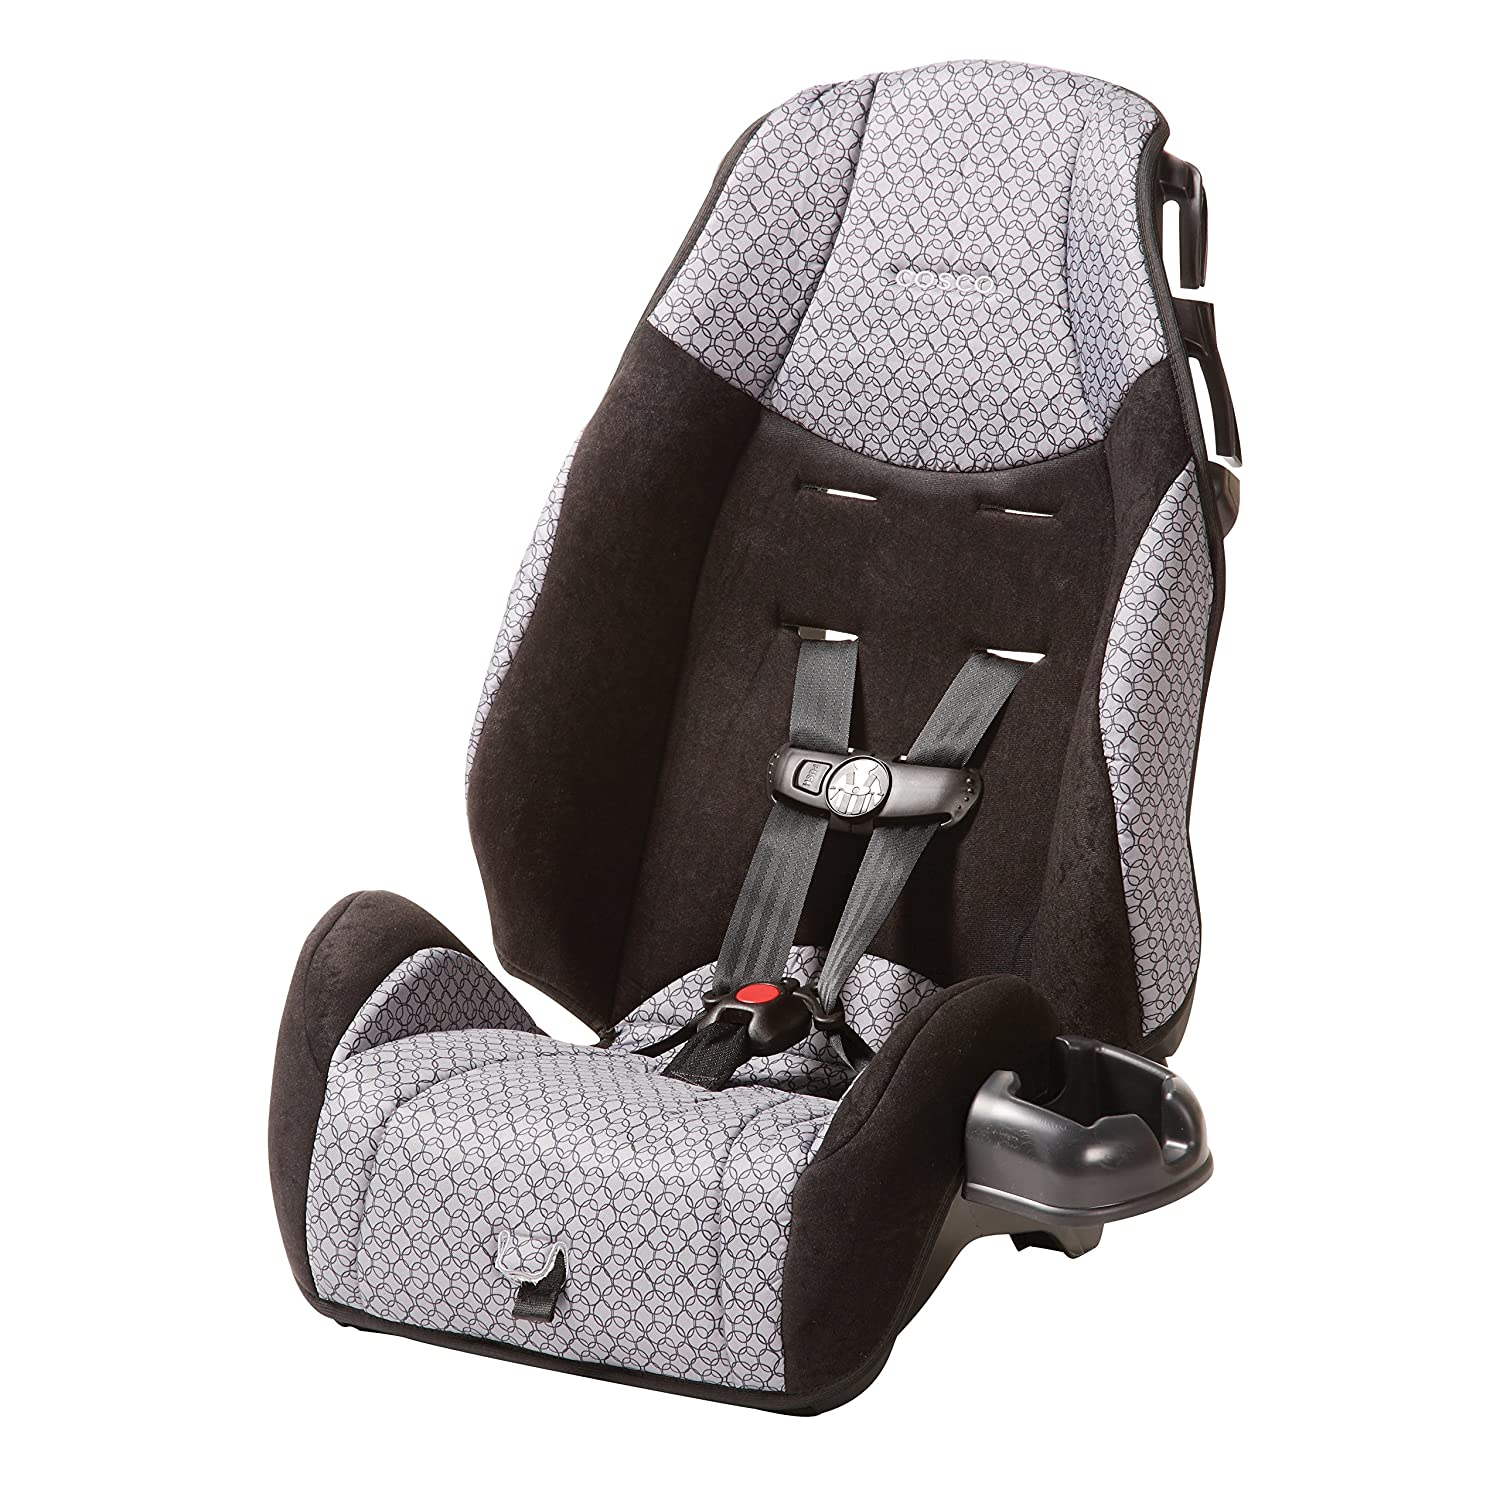 10 Best Car Seats for 5 Year Olds